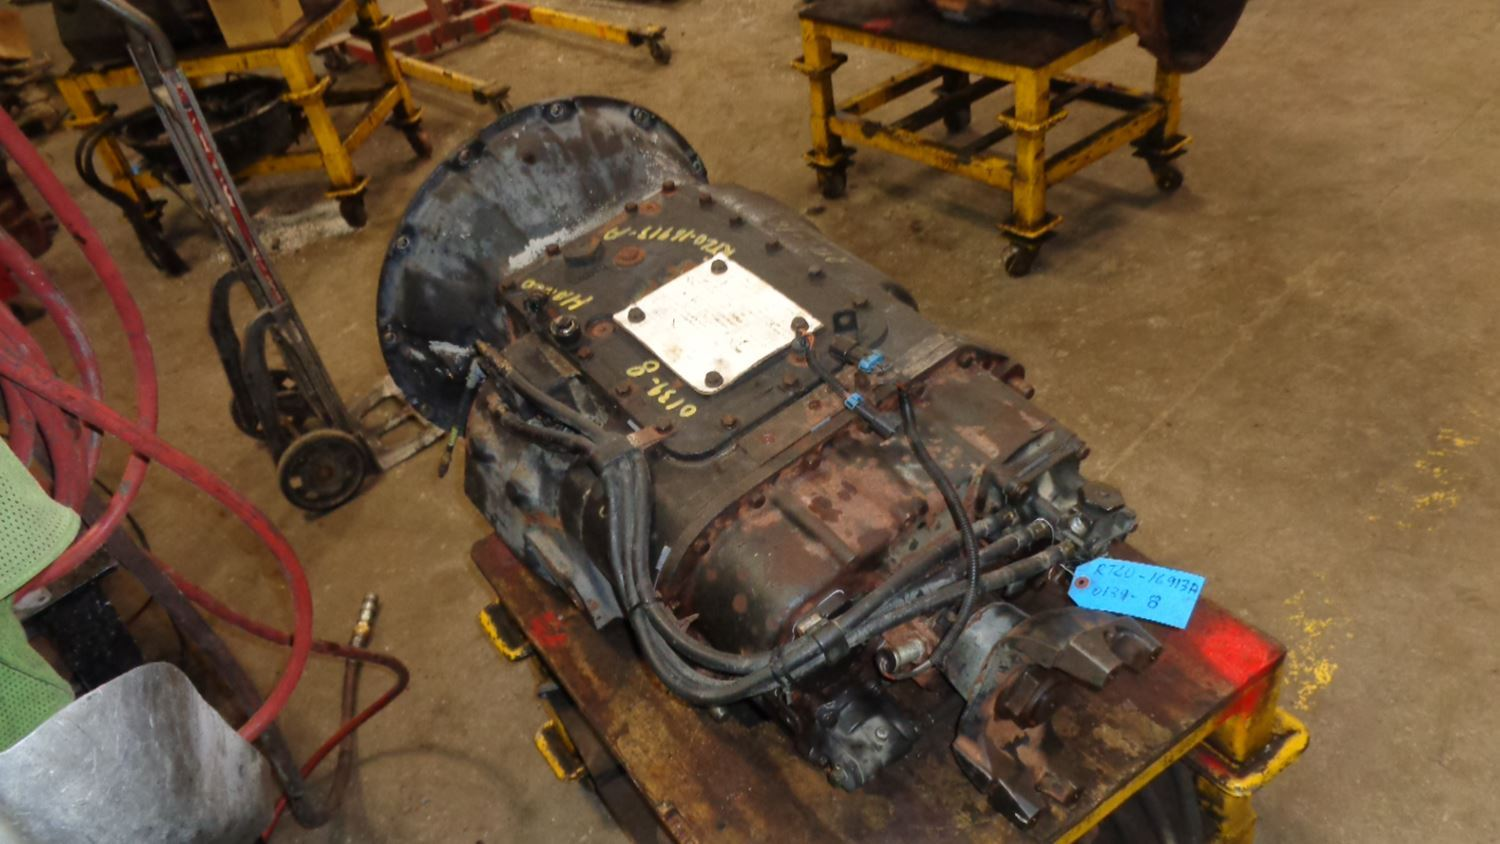 eaton fuller 9 speed transmission diagram aav vent installation rear seal pictures to pin on